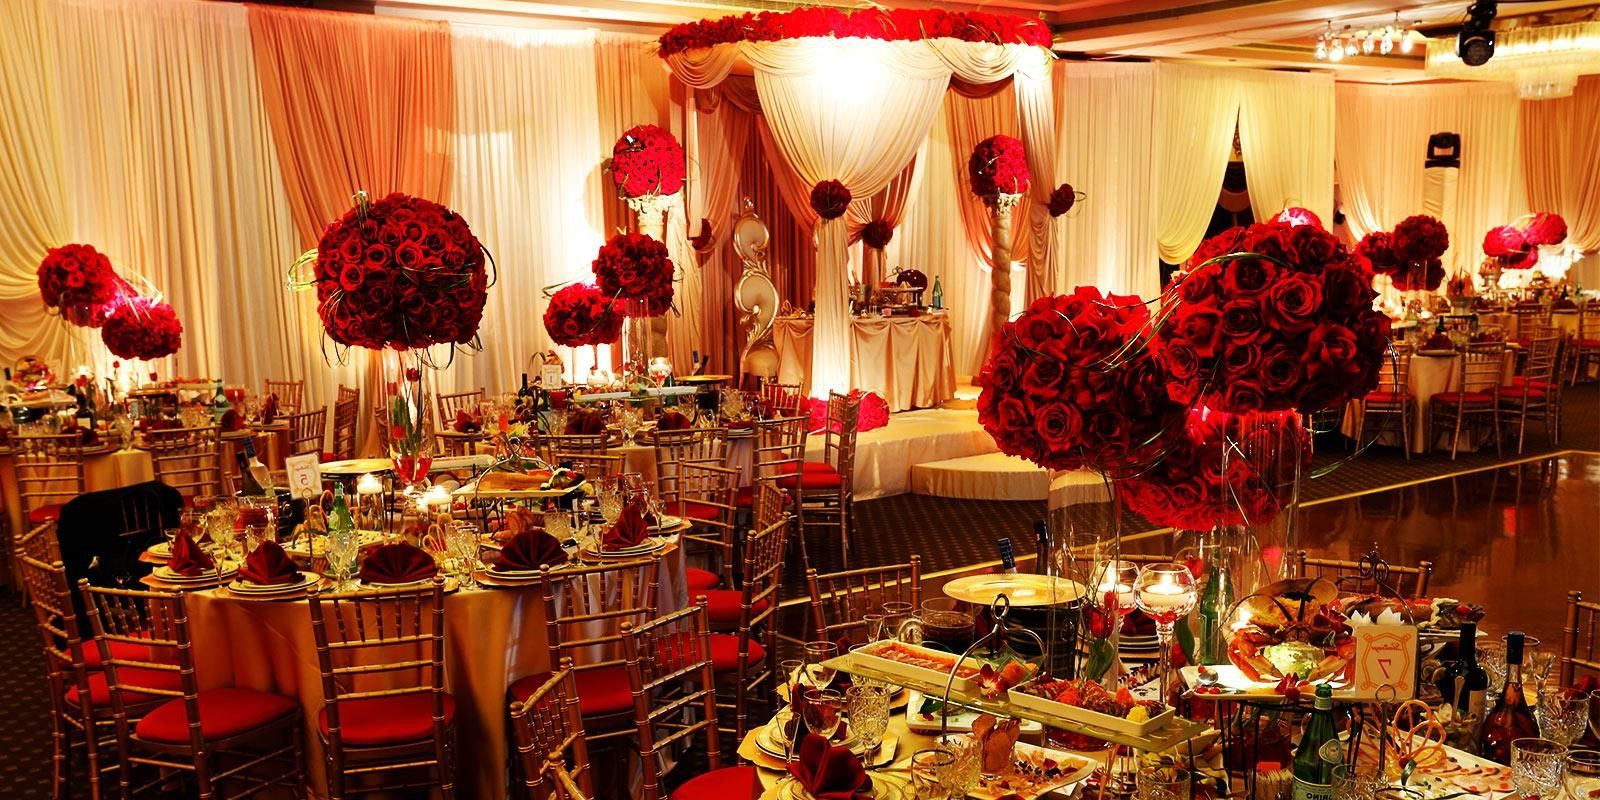 Red and gold wedding decoration mackenzie pinterest gold red and gold wedding decoration junglespirit Choice Image